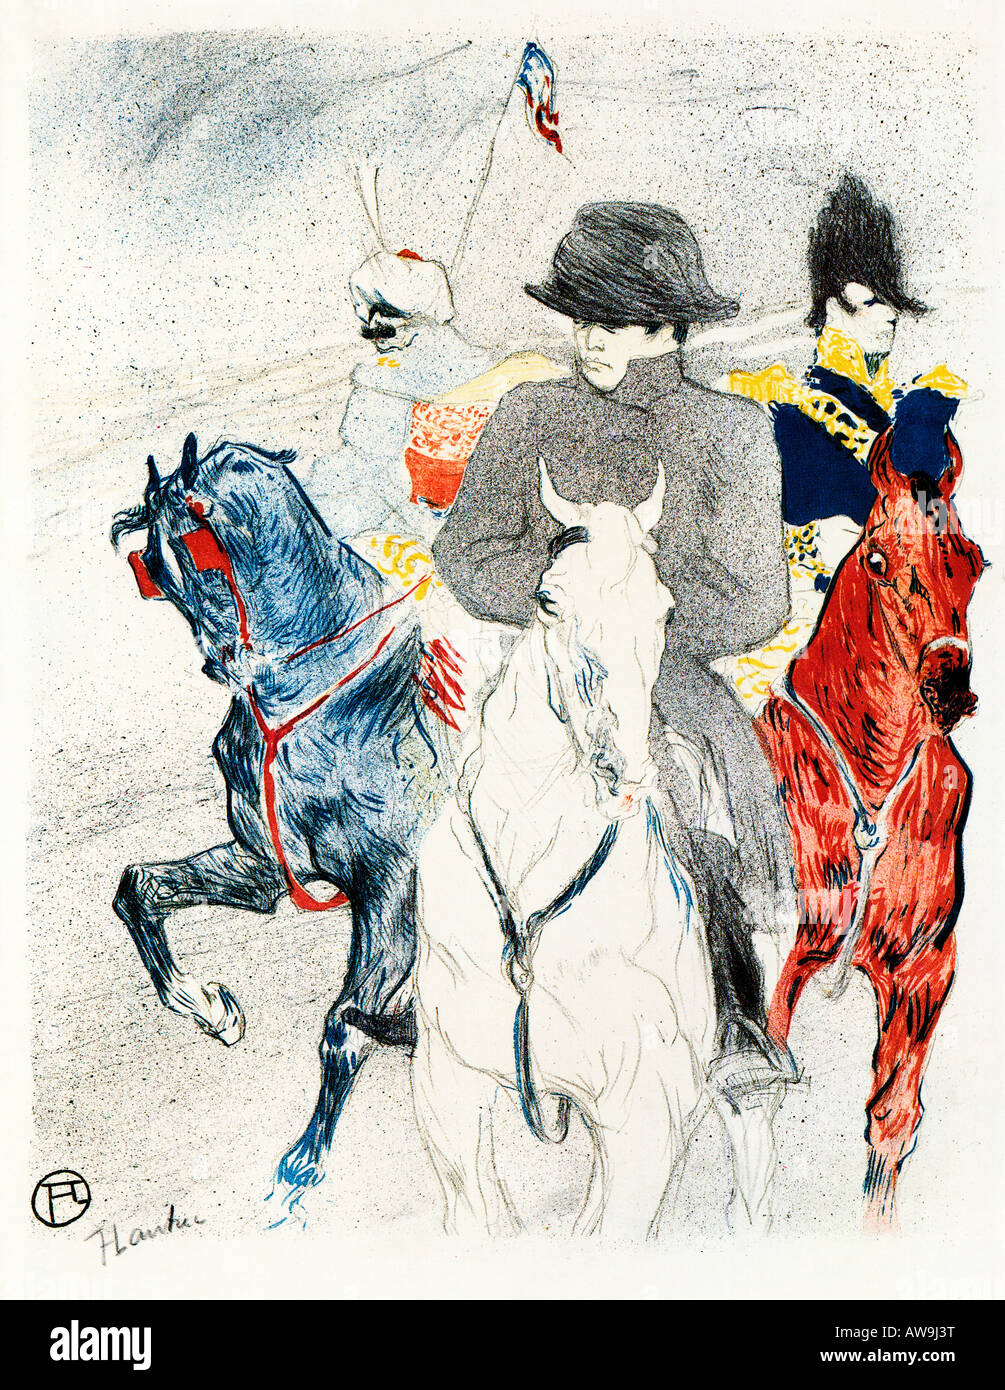 Napoleon 1895 Art Nouveau lithograph by Toulouse Lautrec an unused poster design he printed in an edition himself - Stock Image